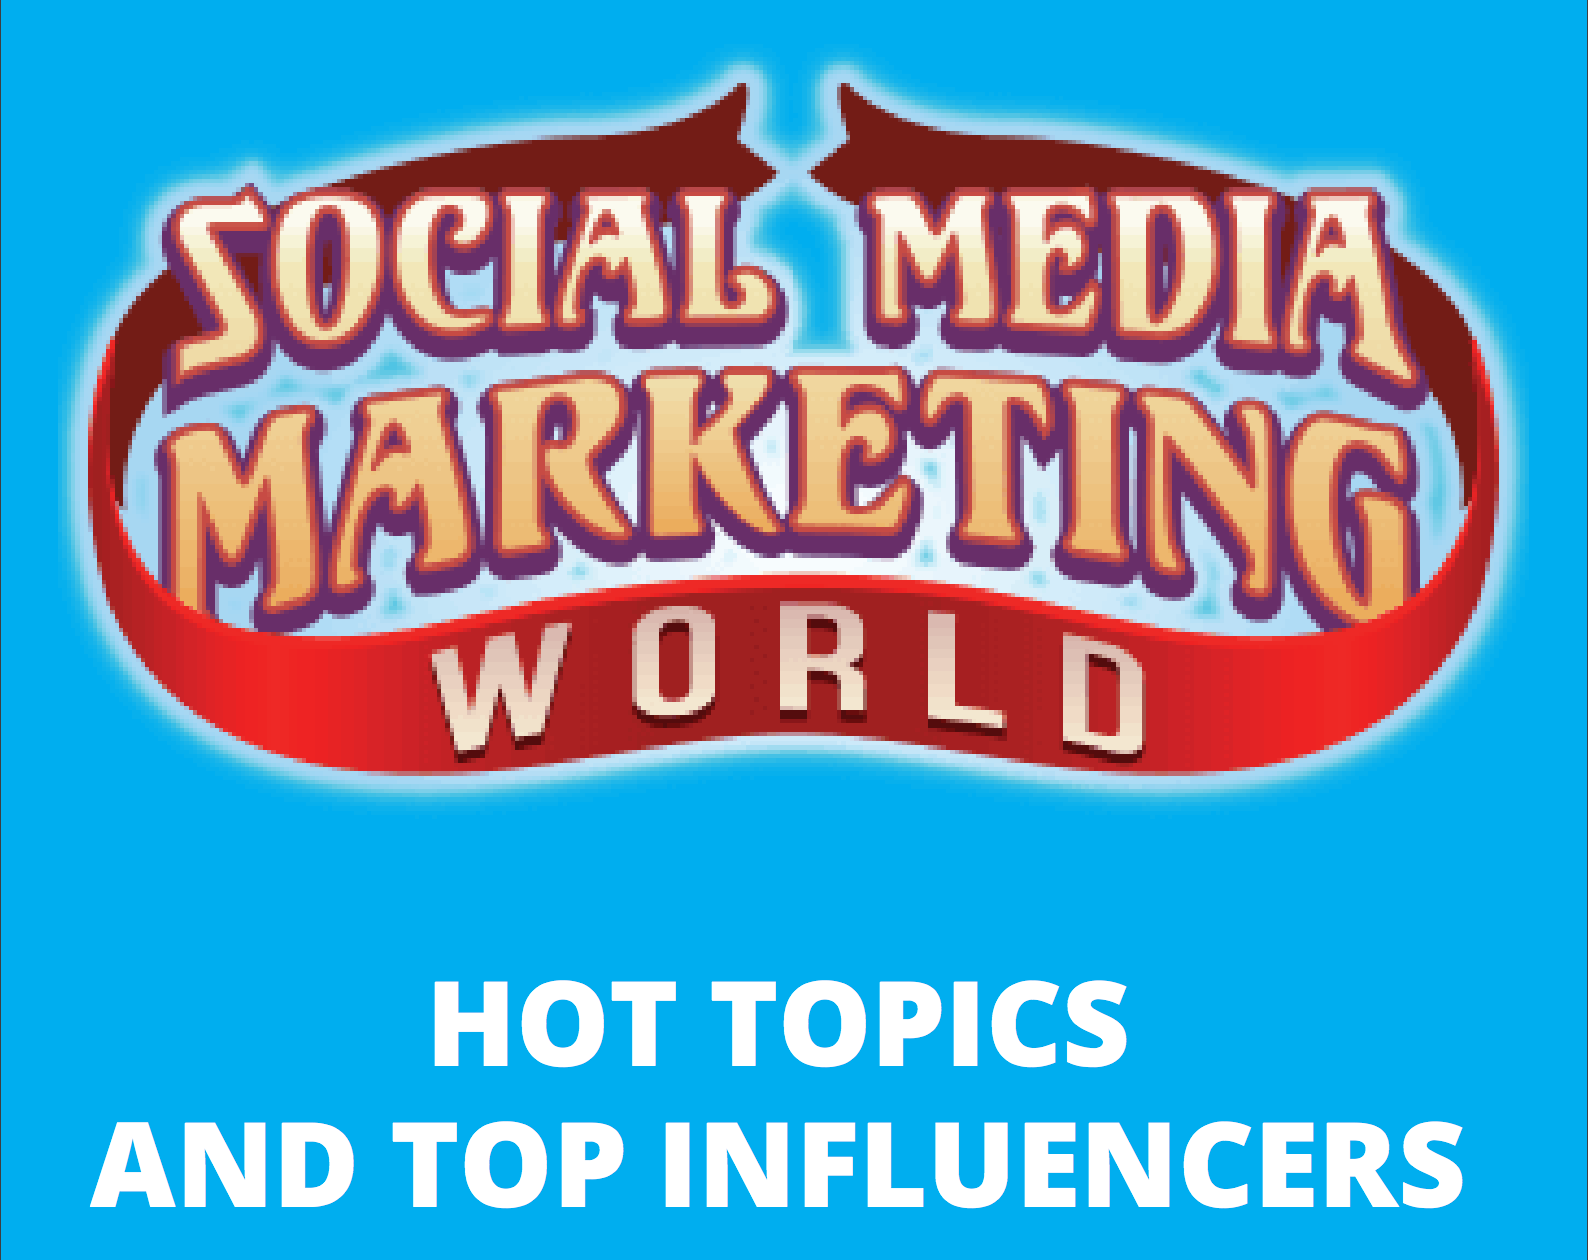 Social Media Marketing Top 100 Influencers Mondiali